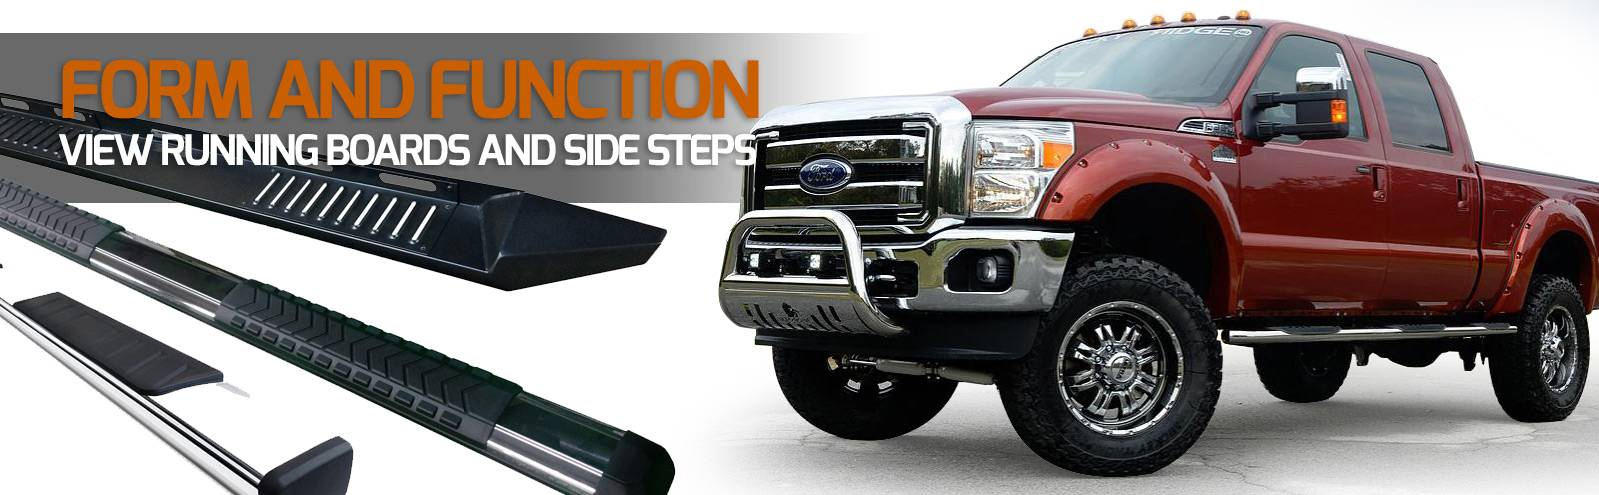 Black Horse Home Page 2015 Chevy Silverado Fog Lights Gallery Image